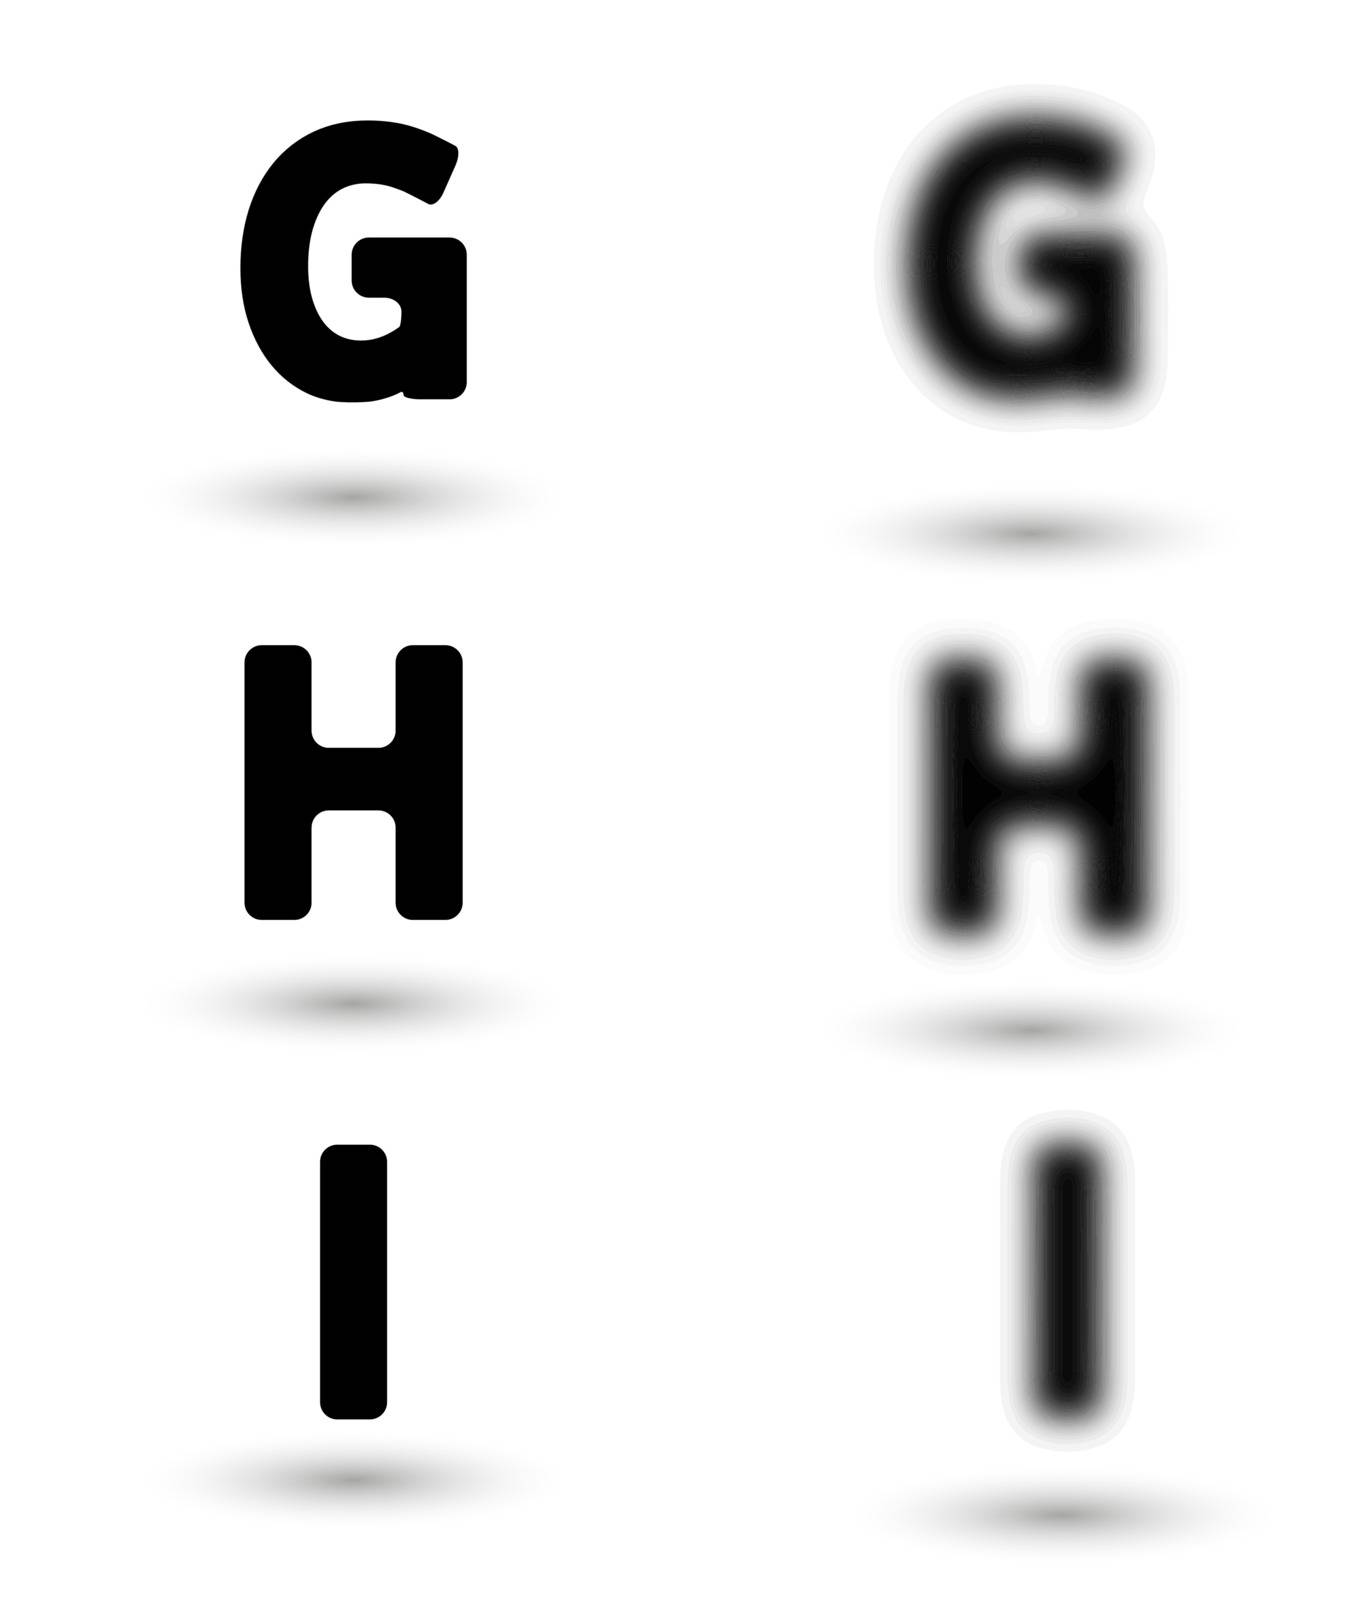 sharp and unsharp alphabet letters with shadow / font. Sharp as a symbol of good sight and unsharp as a symbol for bad eyes and needed of glasses.